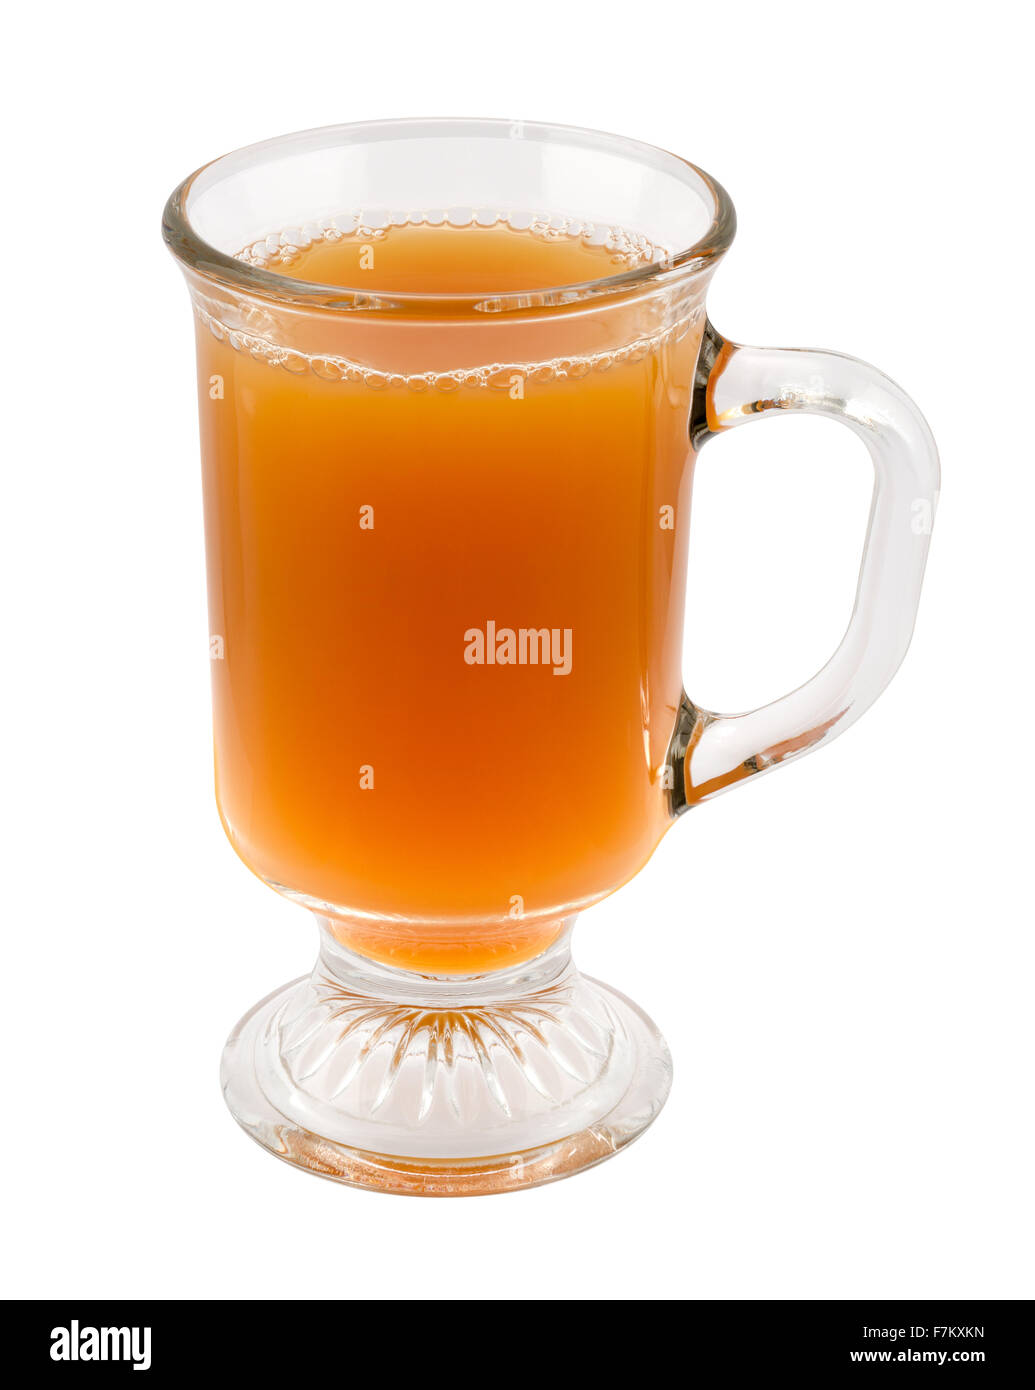 Apple Cider in a Glass Mug - Stock Image